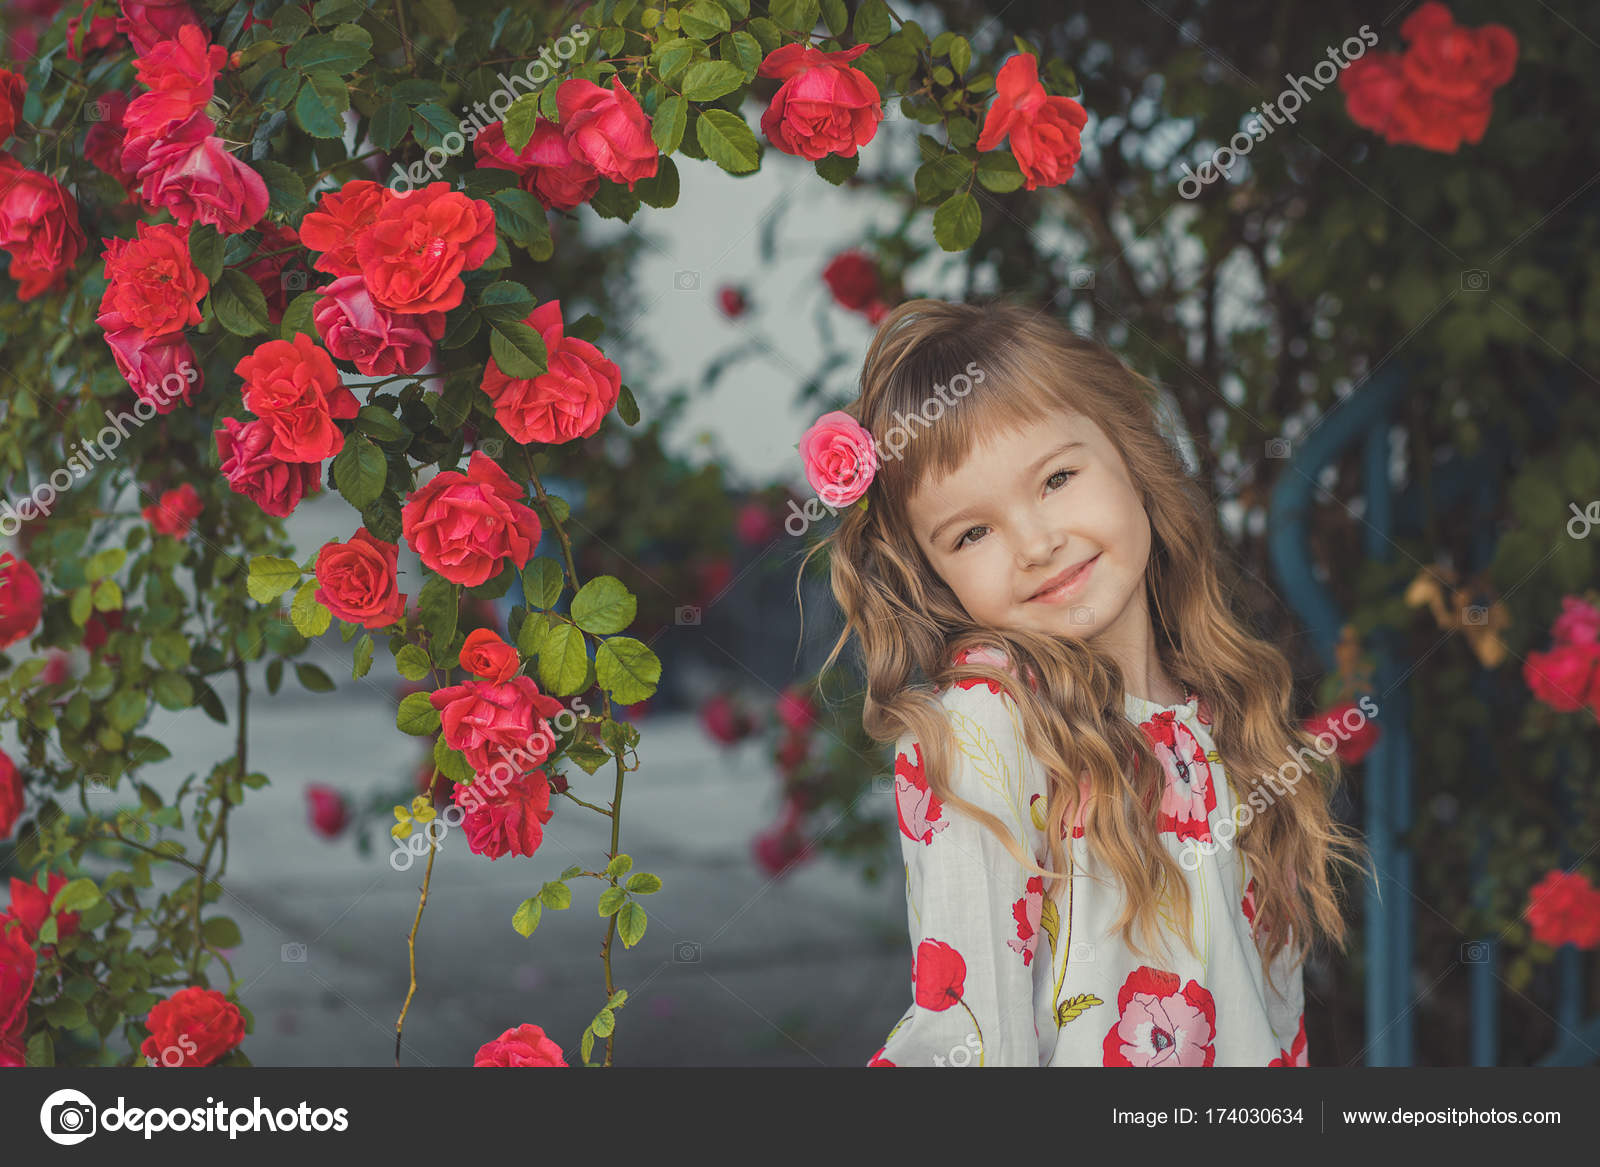 cute baby girl with blond curly hairs and happy bright child eyes